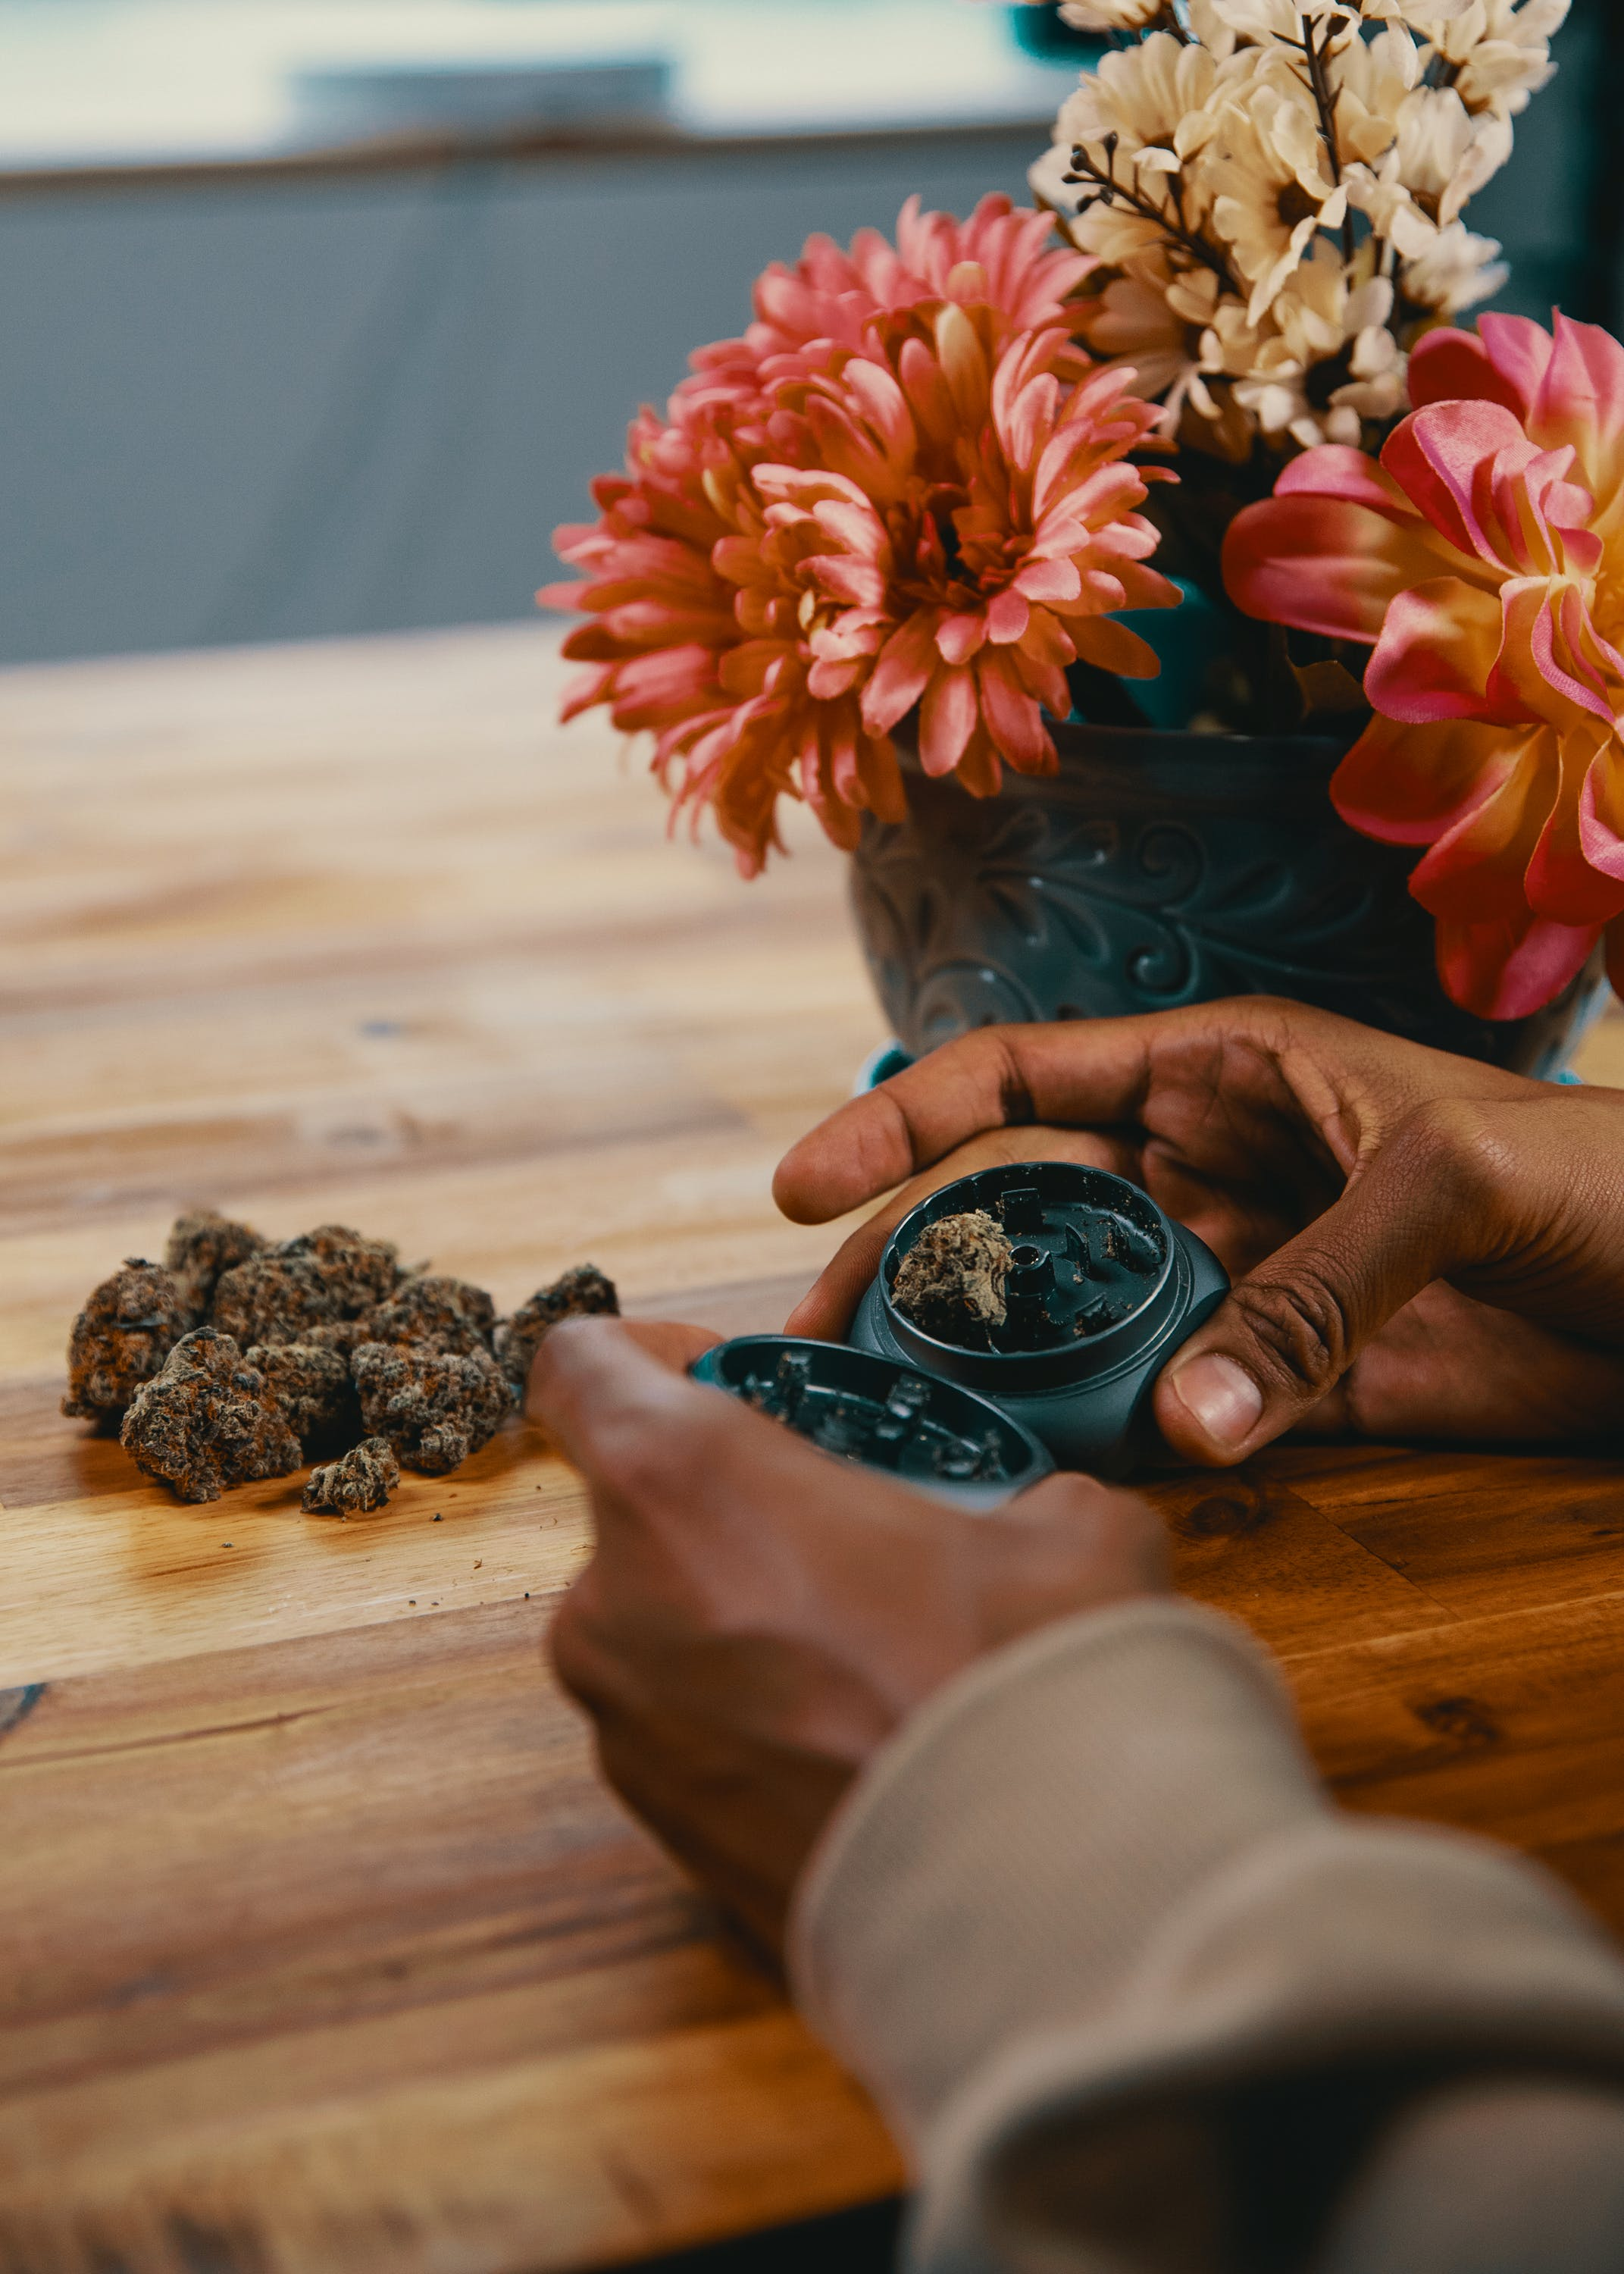 How To Get The Most Out Of Your Stash With The Best Weed Grinders 1 2 How to Get the Most Out Of Your Stash with the Best Weed Grinders